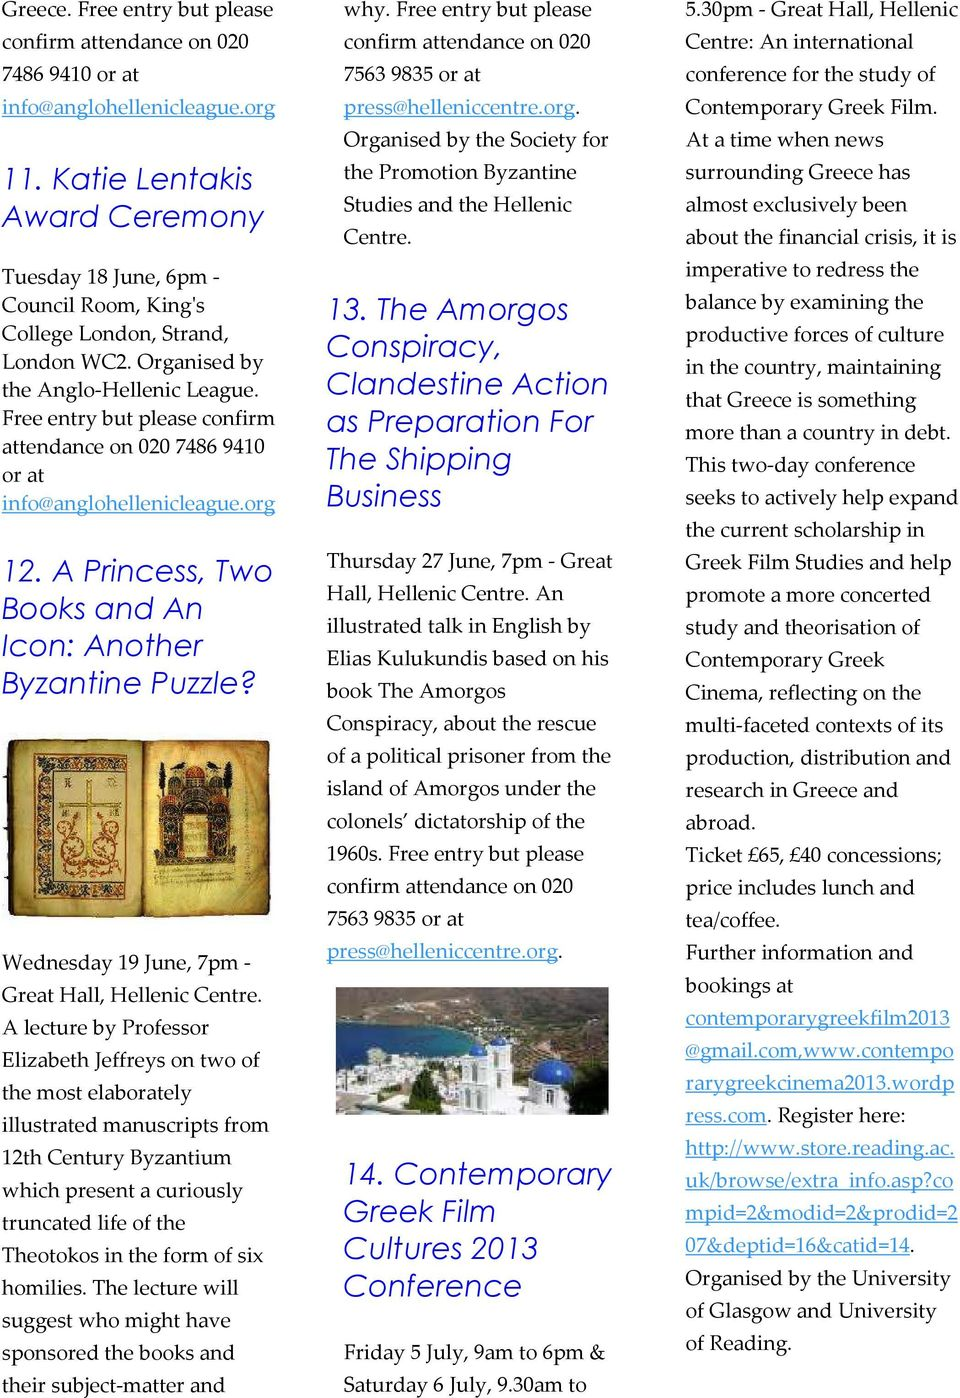 Free entry but please confirm attendance on 020 7486 9410 or at info@anglohellenicleague.org 12. A Princess, Two Books and An Icon: Another Byzantine Puzzle?